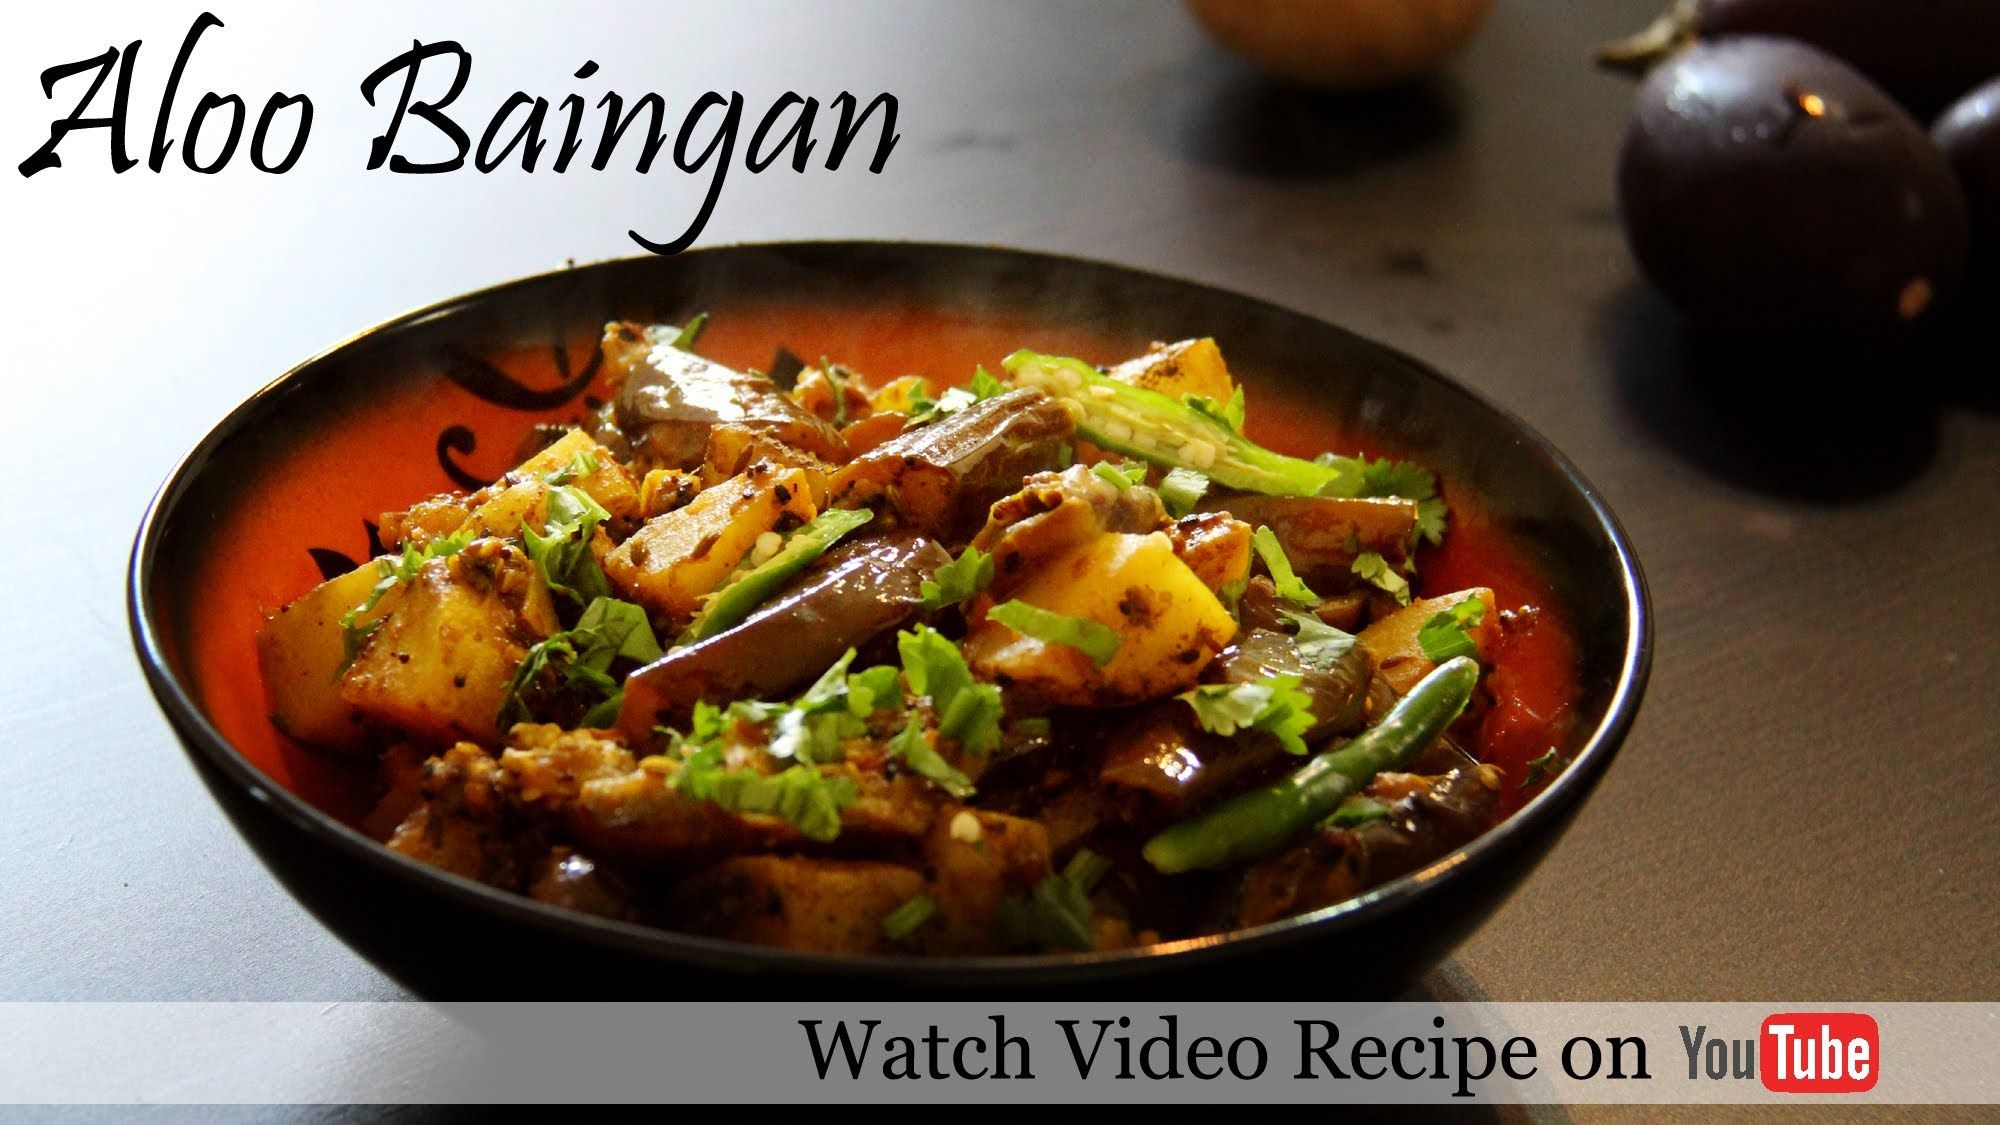 Aloo baingan recipe video potato eggplant brinjal recipes food aloo baingan recipe video forumfinder Images